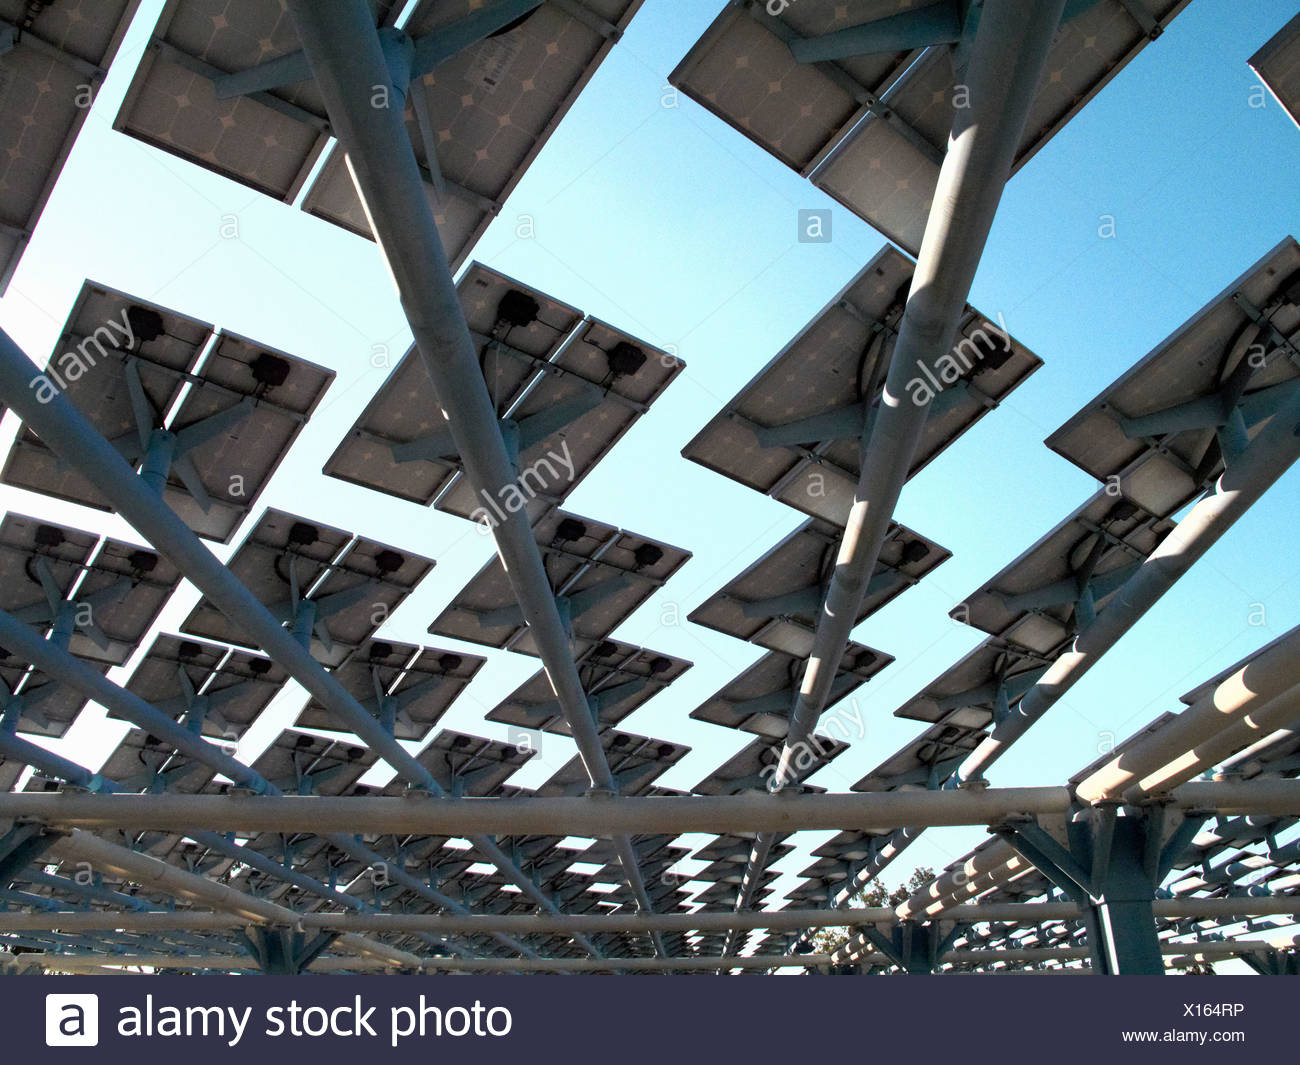 Solar panels creating shade on roof - Stock Image